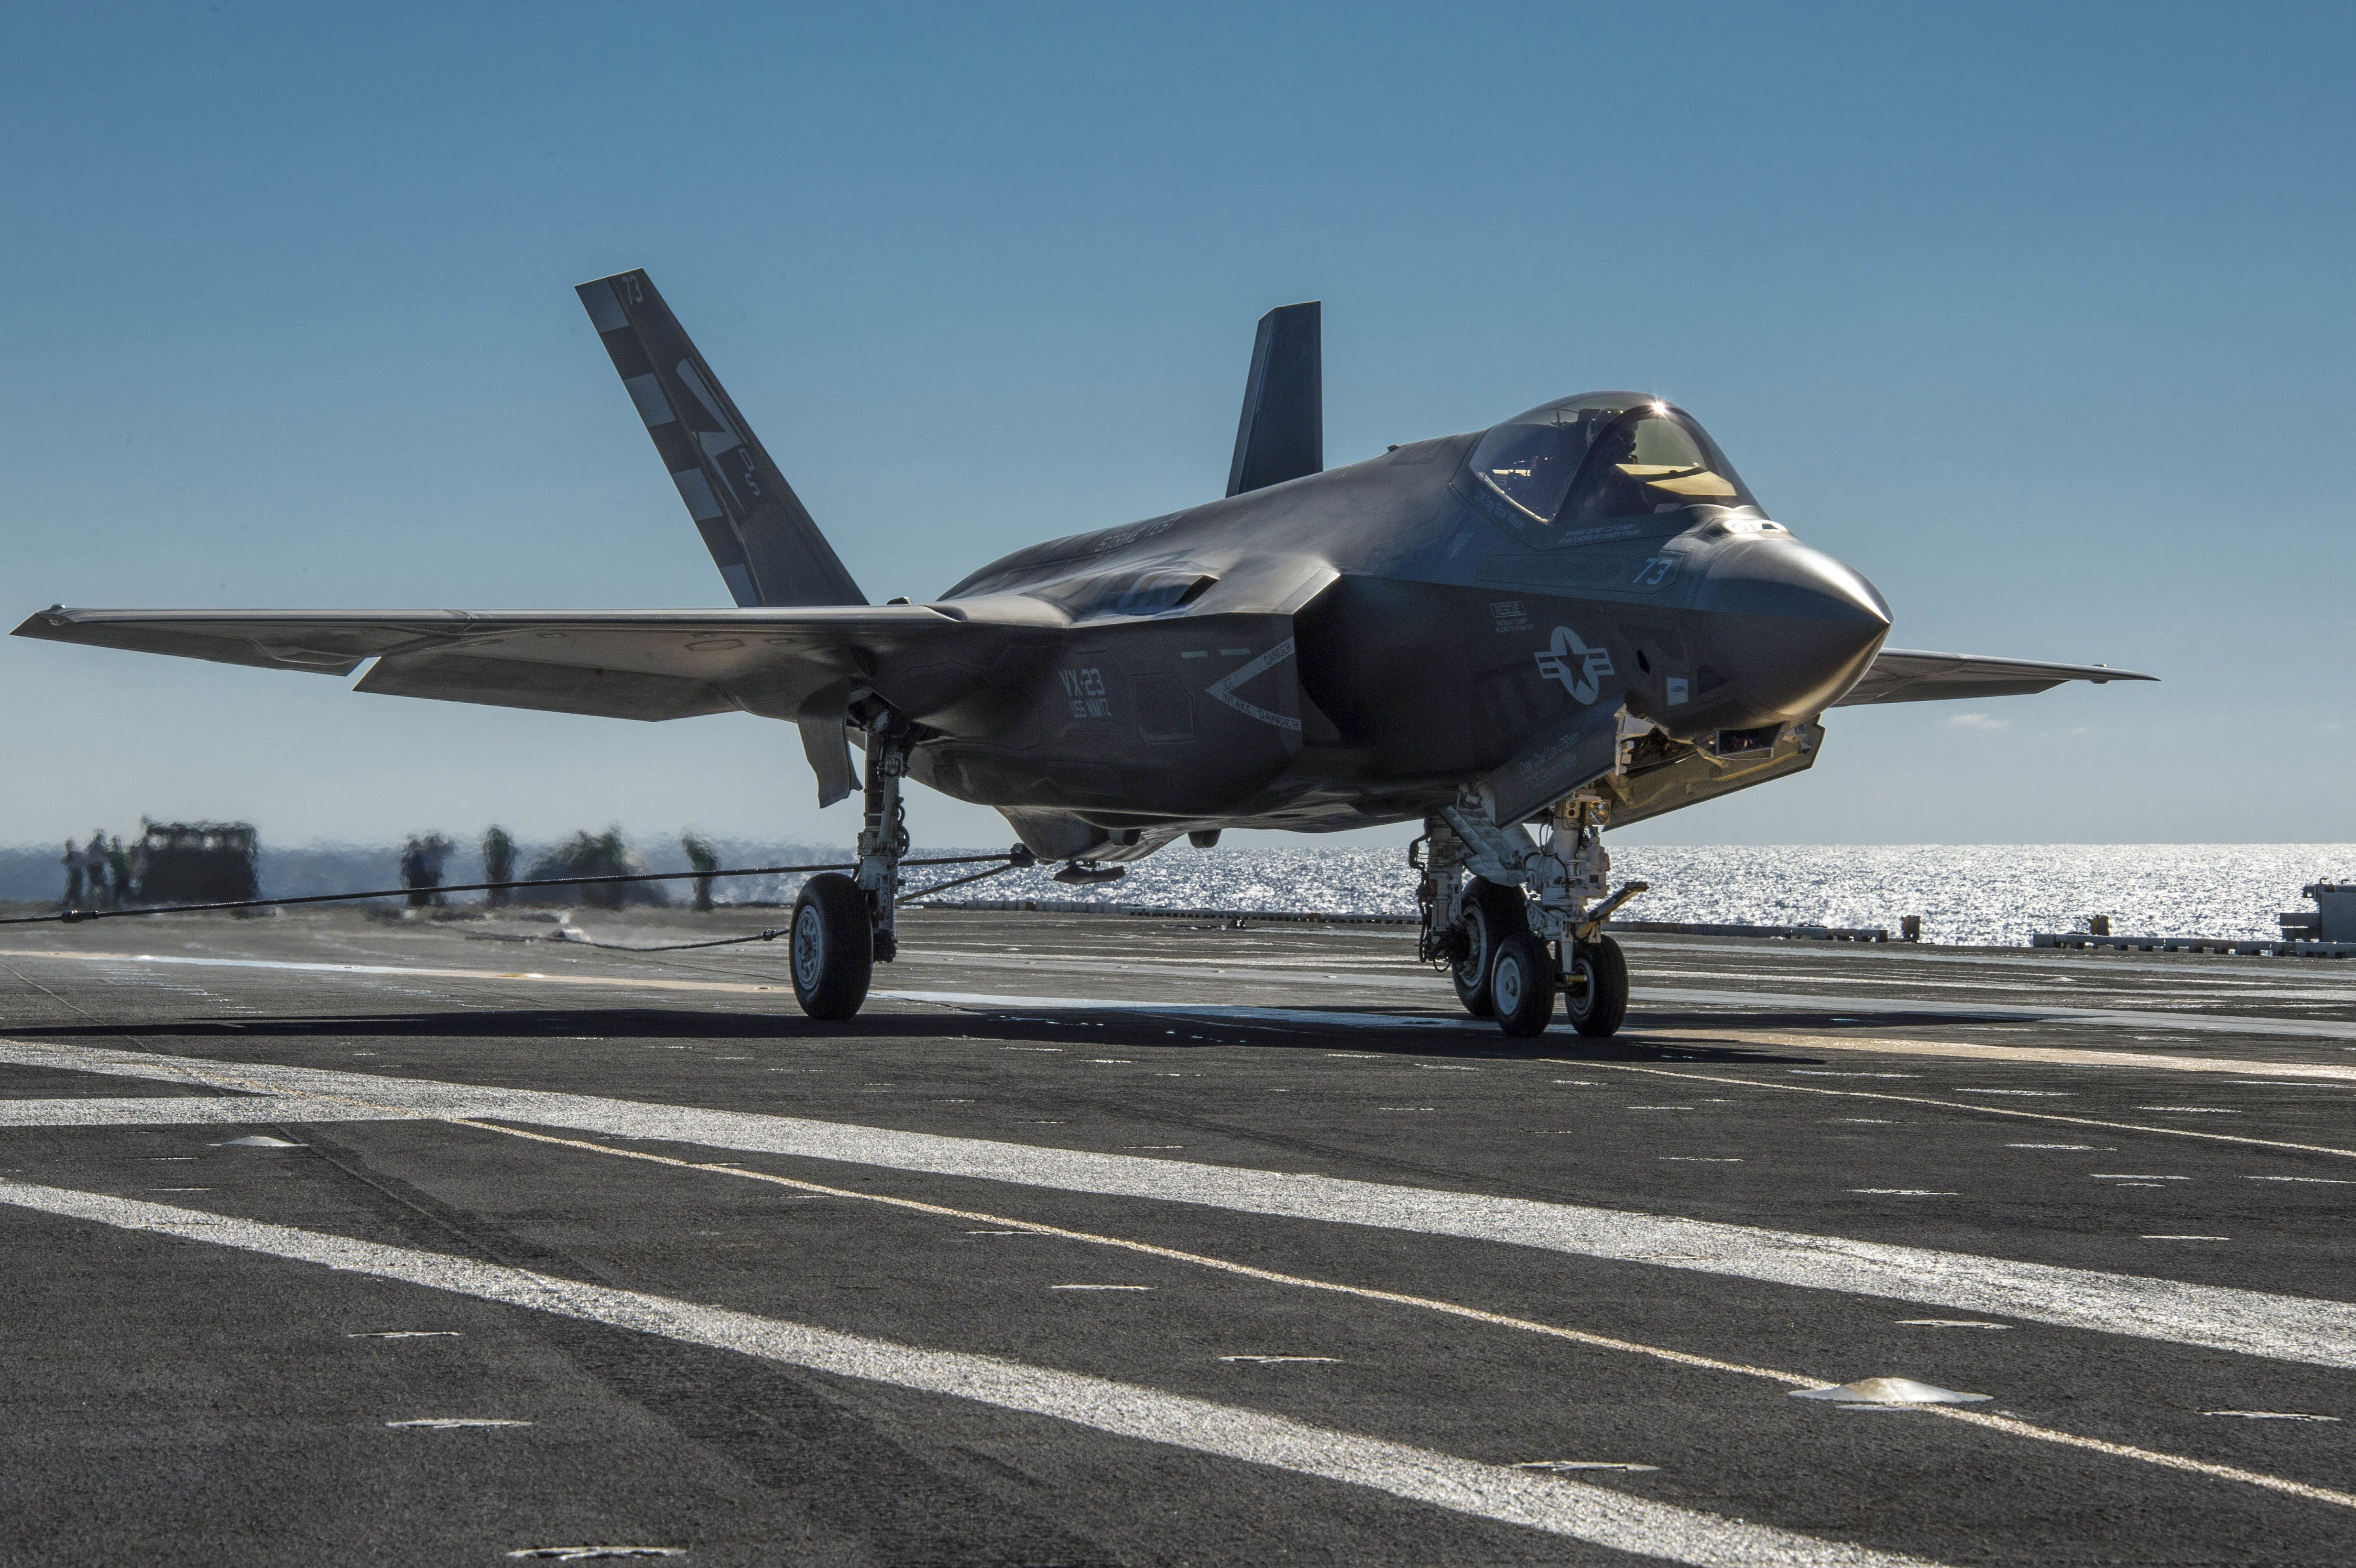 The Navy's Decision to Solve Its Fighter Shortage Makes No Sense